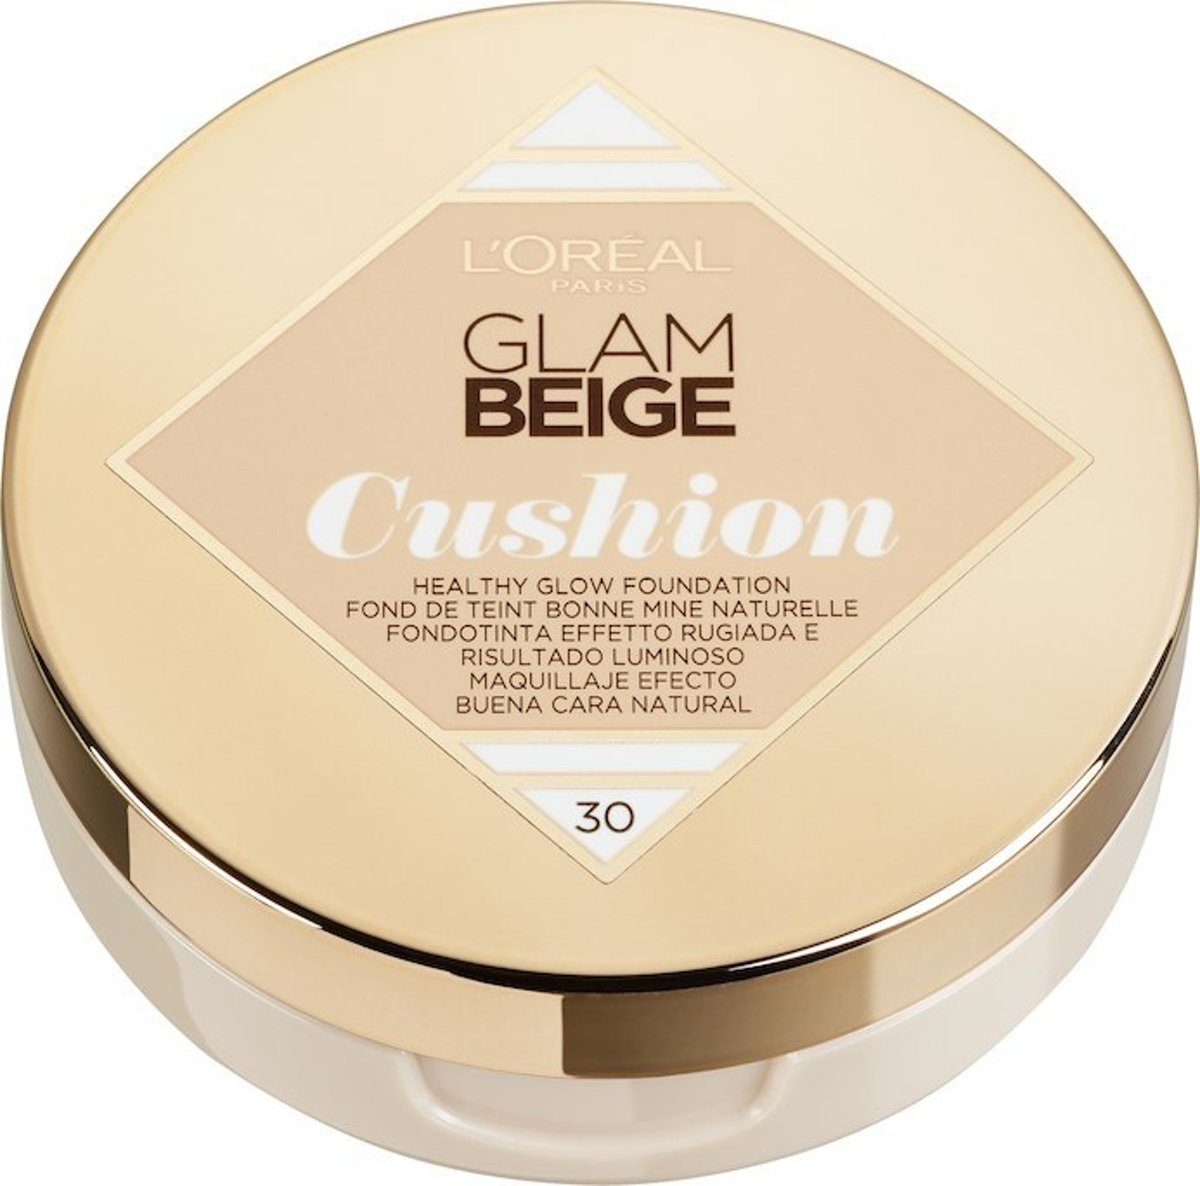 LOréal Paris Glam Beige Cushion Healthy Glow Foundation - 30 Medium Light